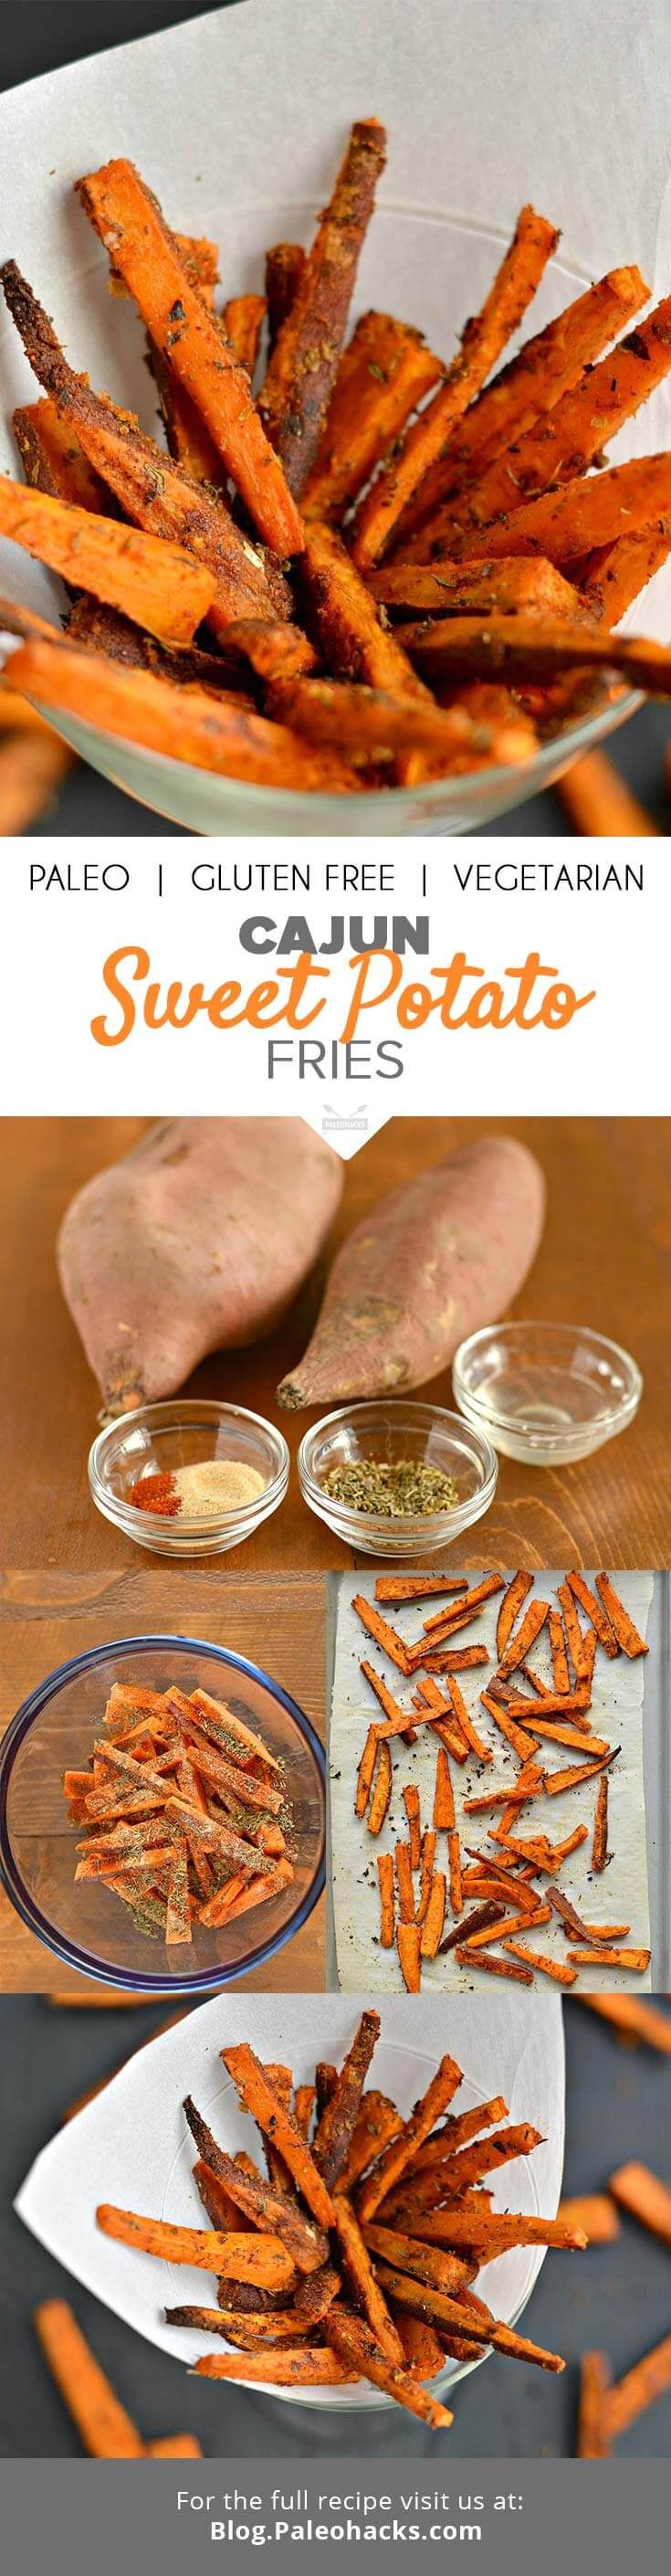 Everyone loves a heap of crispy fries, especially when they pack an antioxidant kick! Get the recipe here: http://paleo.co/cajunfriesrcp